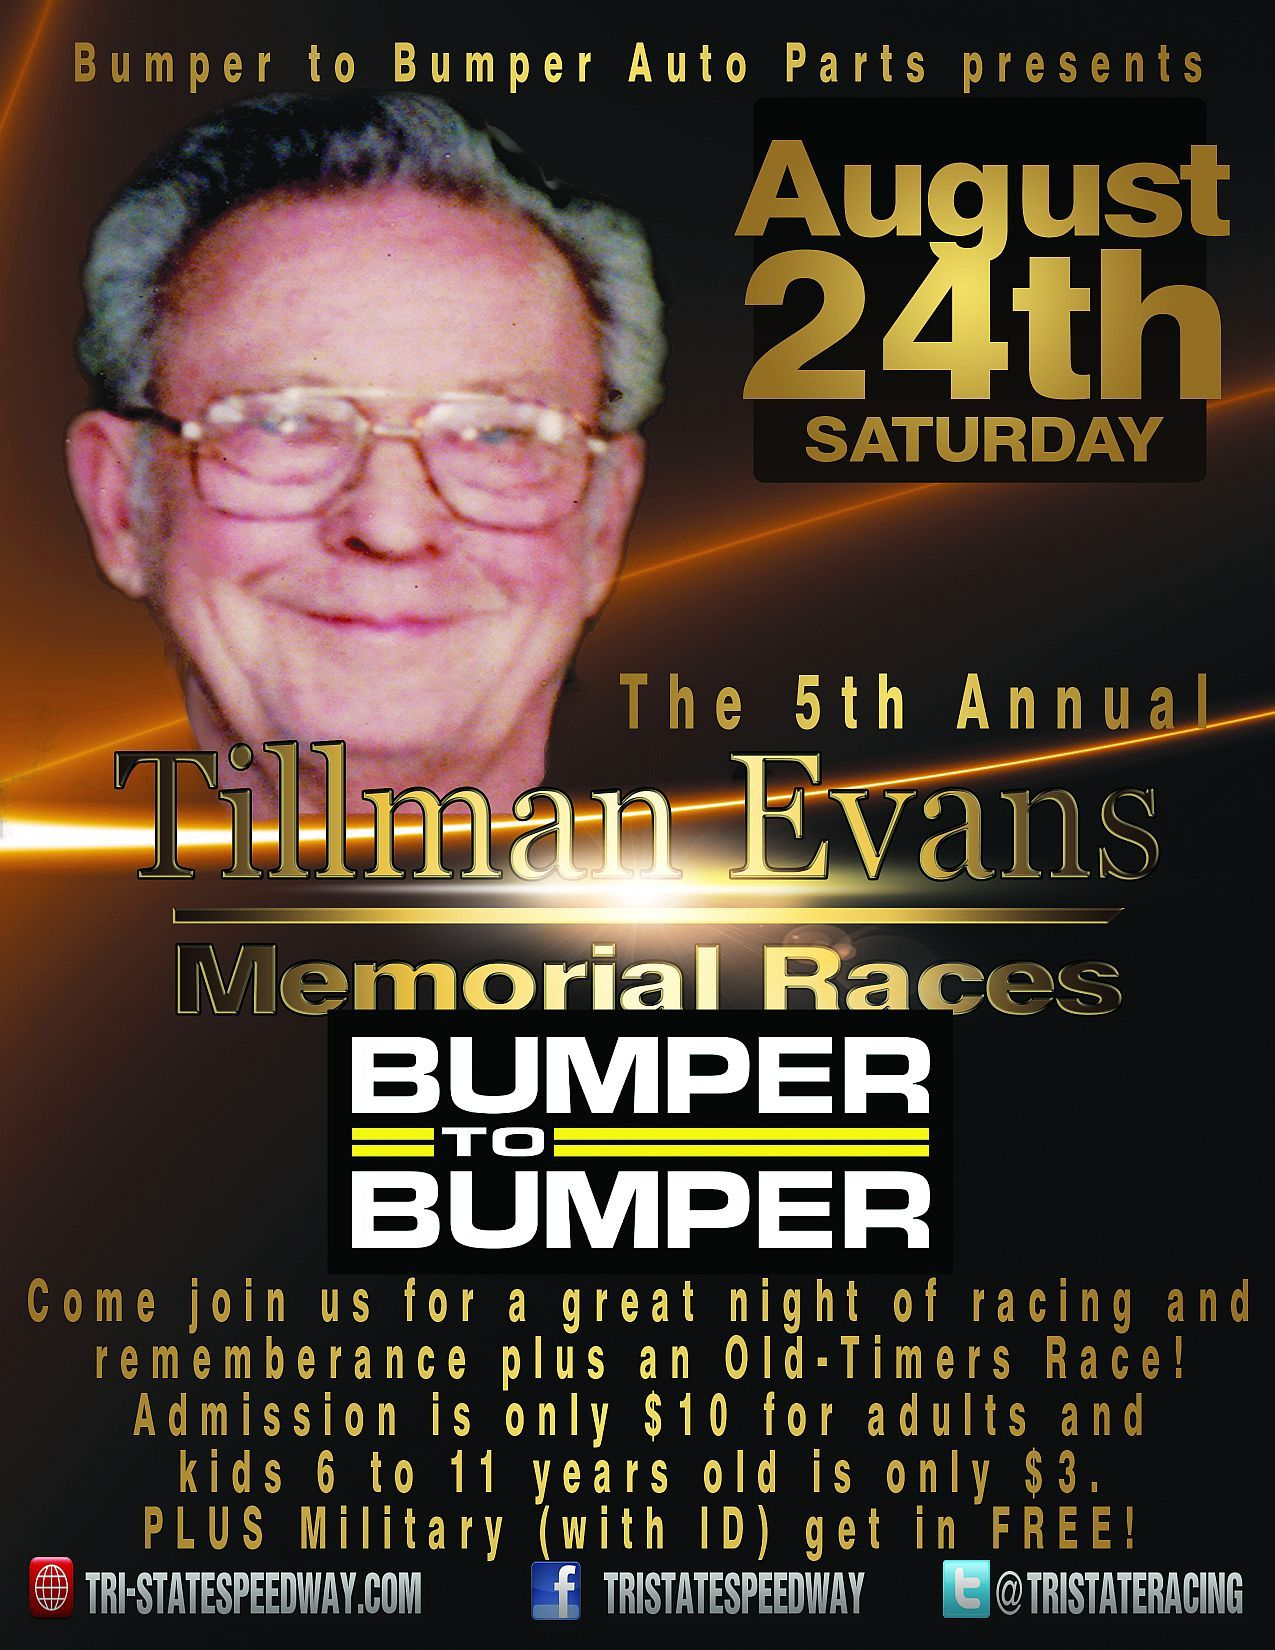 Tillman Evans Memorial Races